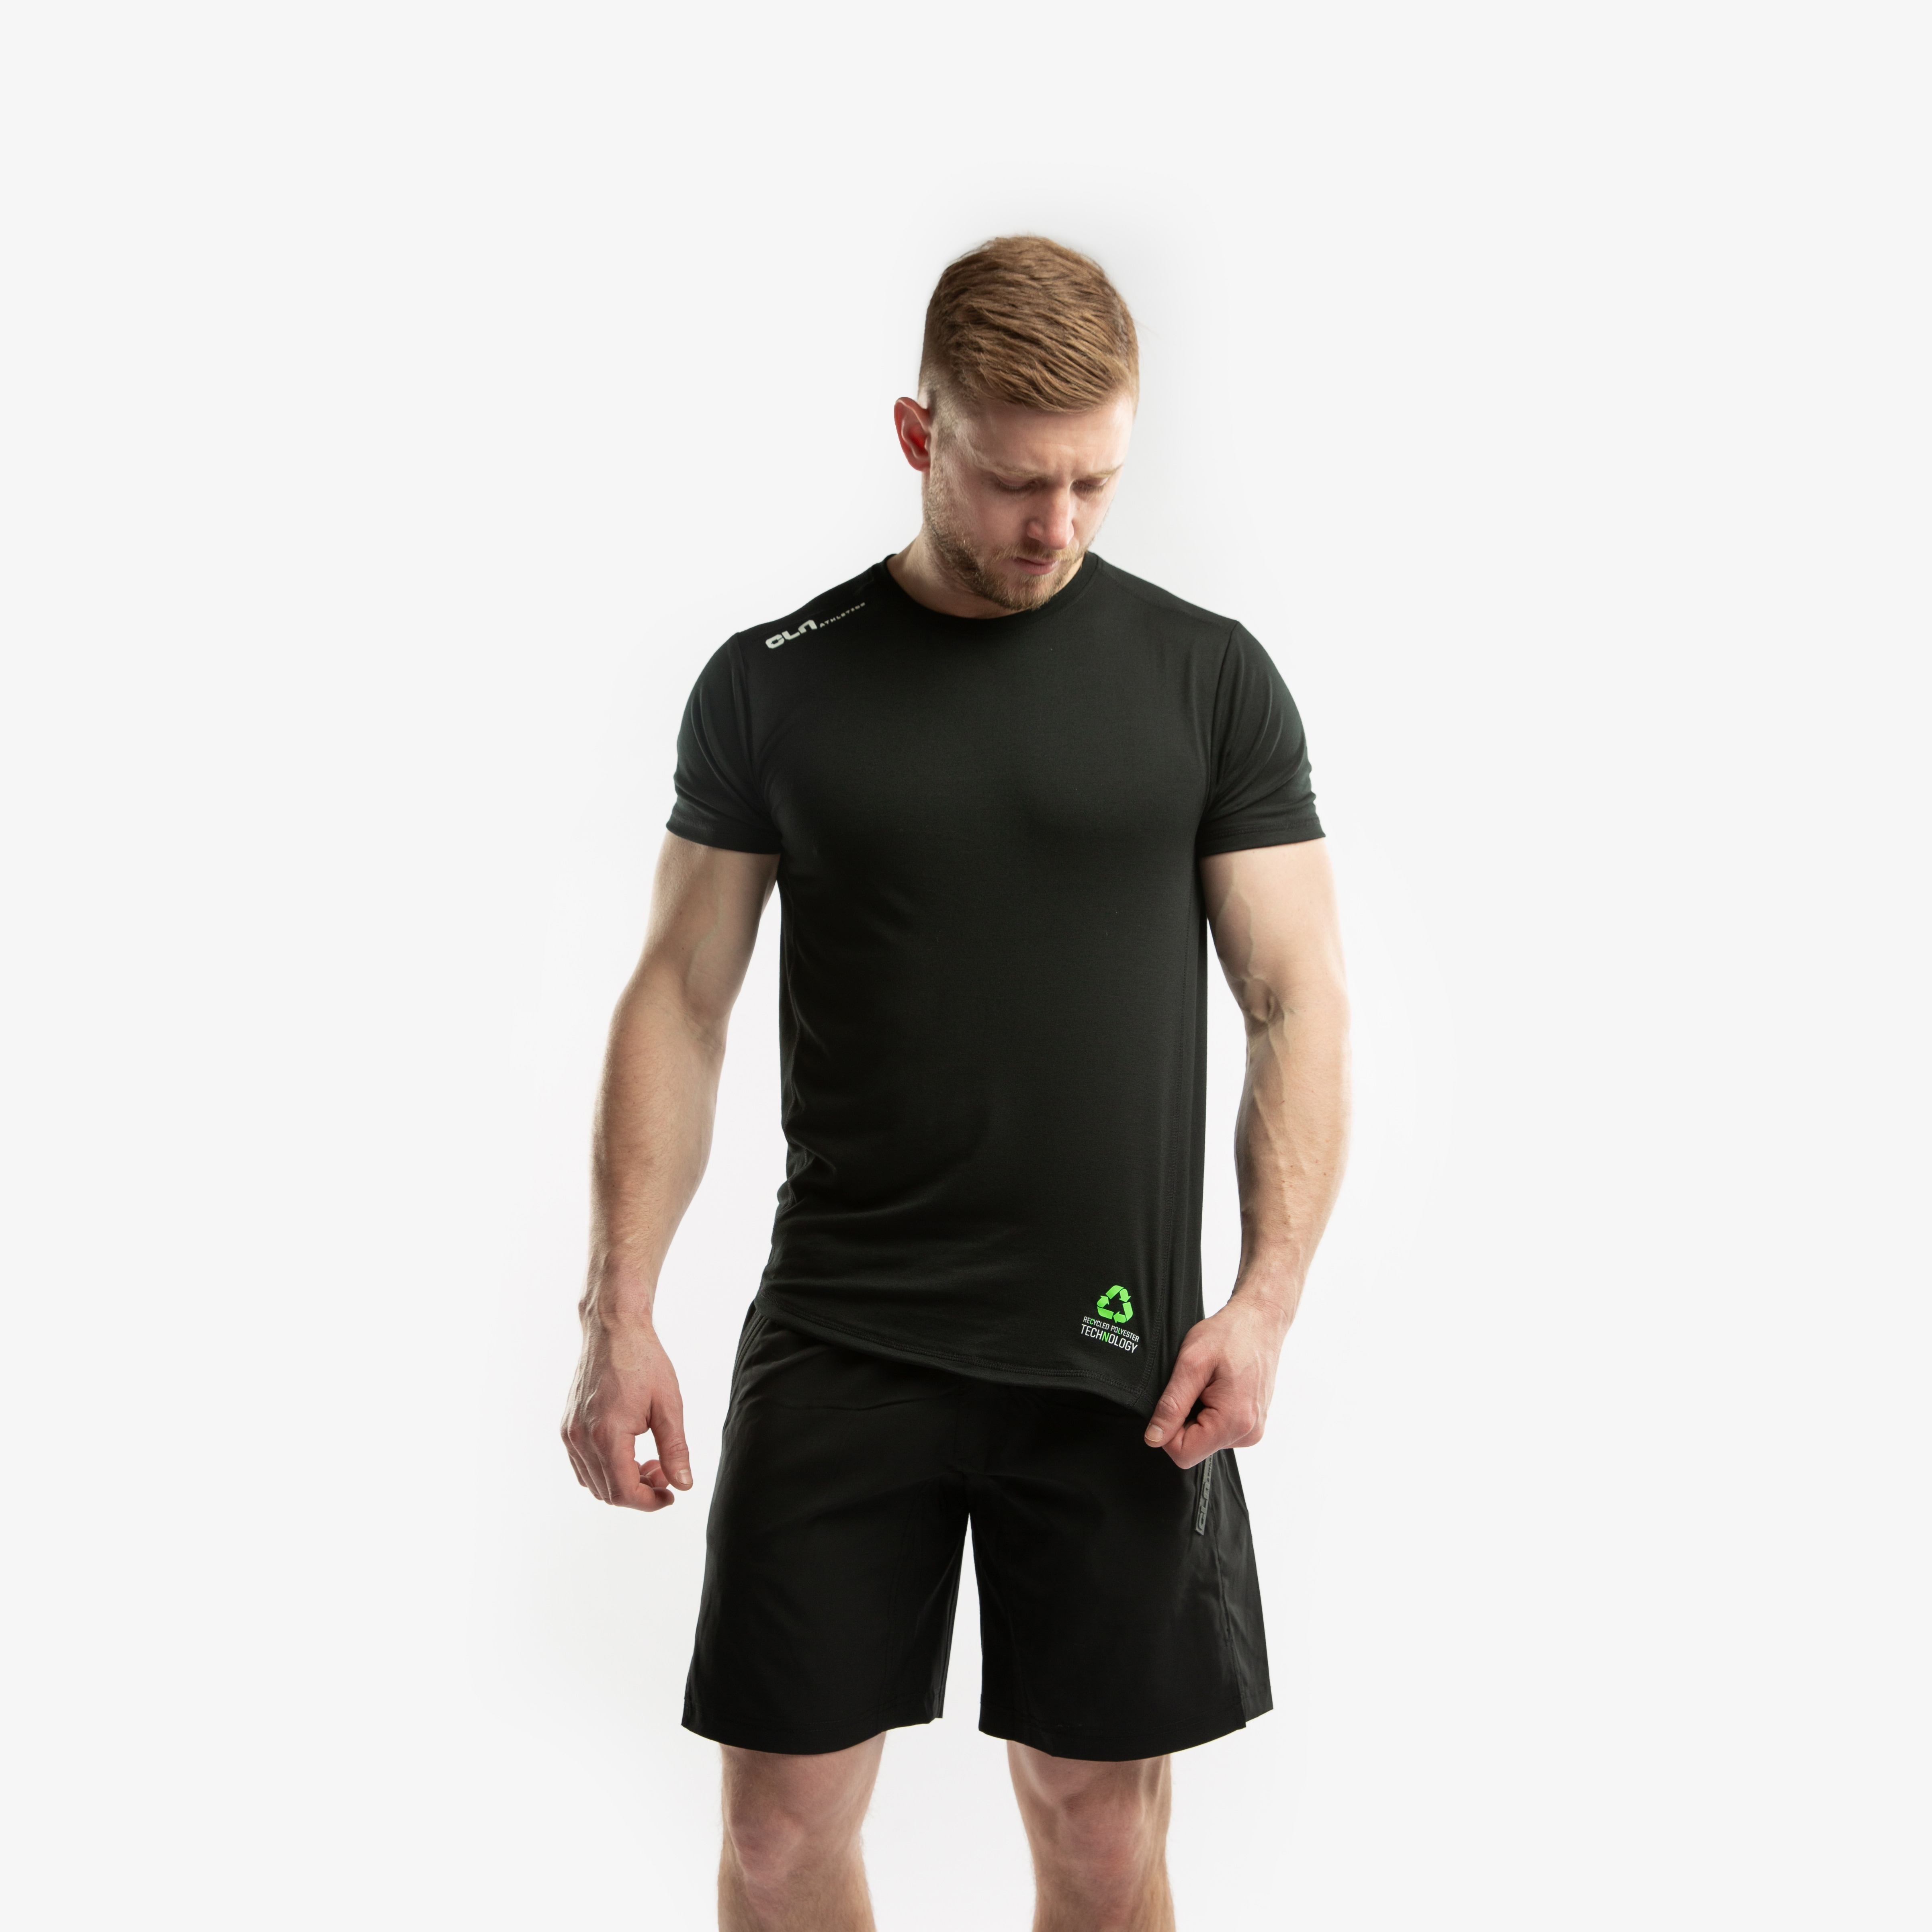 CLN Rec T-shirt black